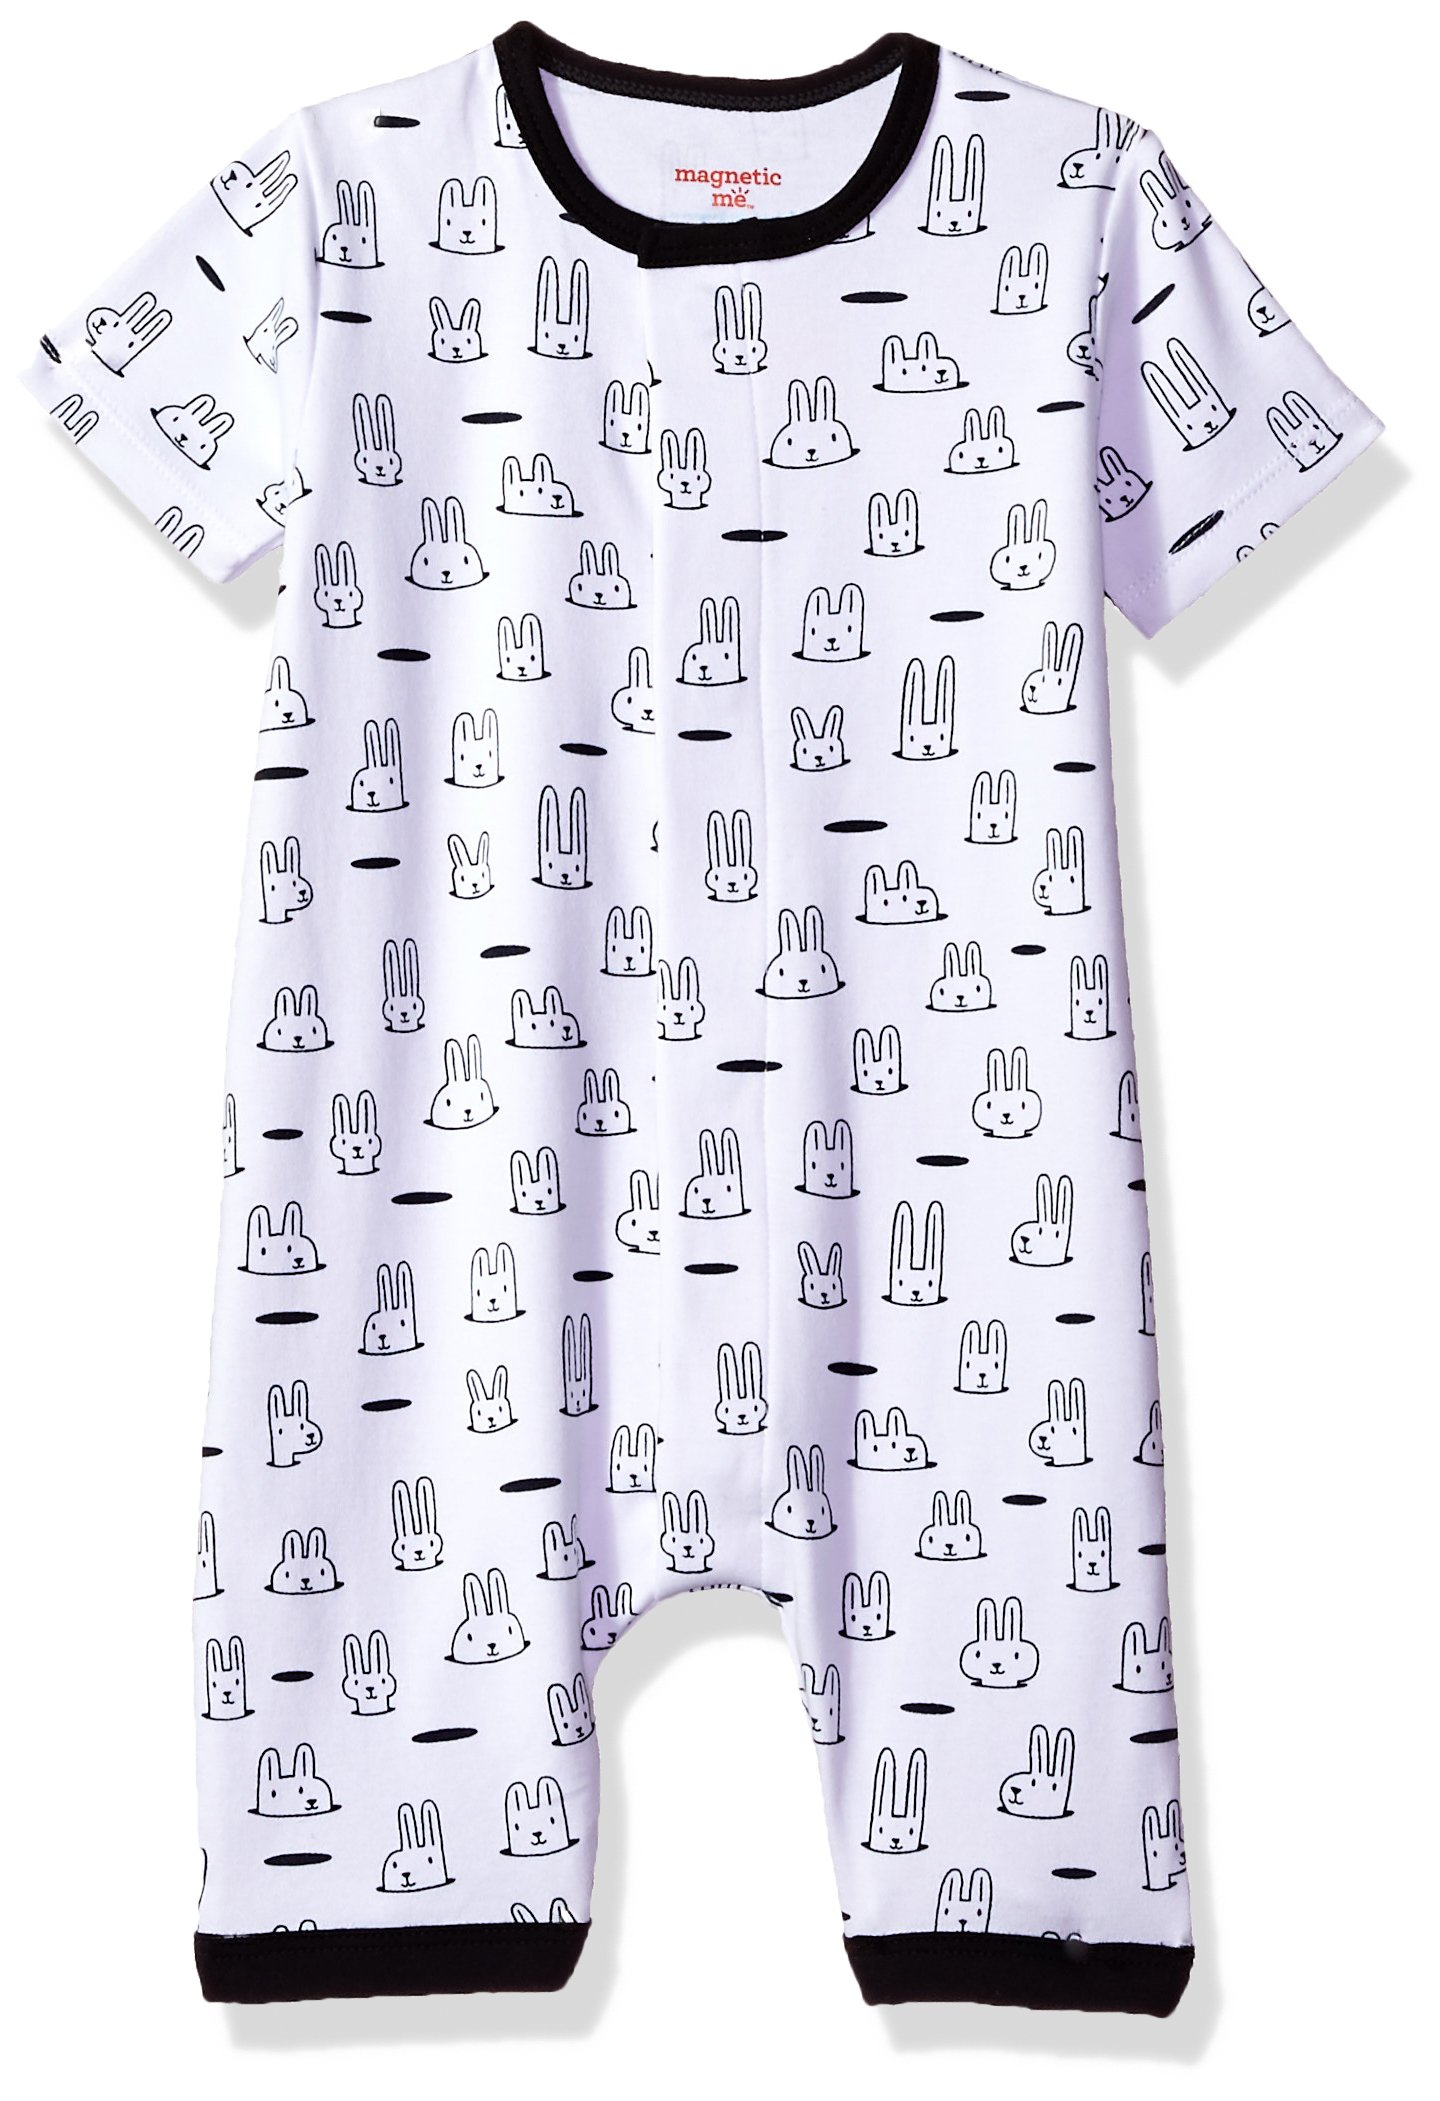 Magnificent Baby Baby Infant Magnetic Romper Blanket Sleepers